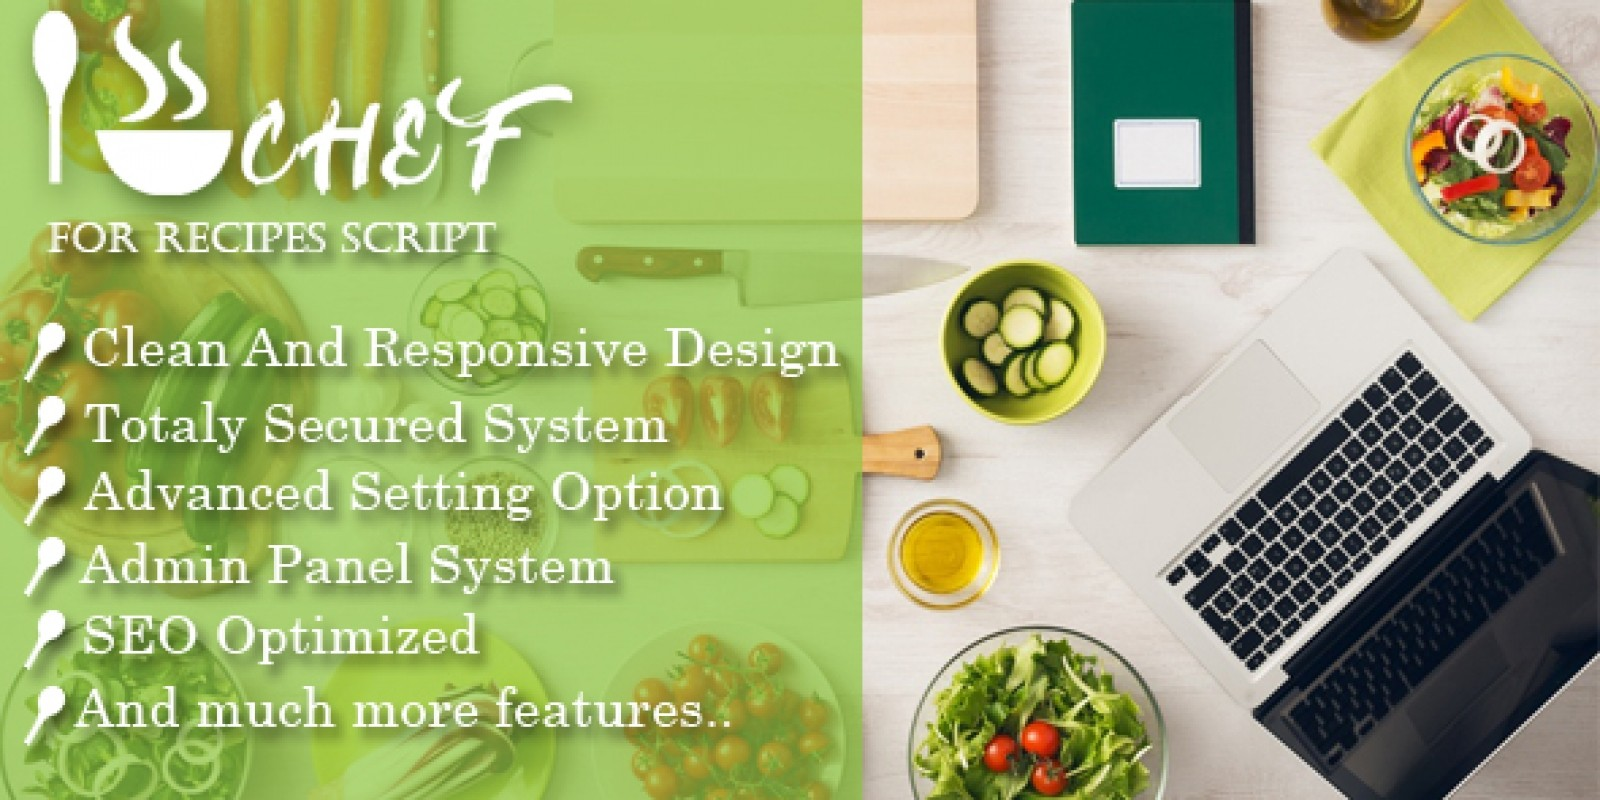 I-Chef - Recipes PHP Script